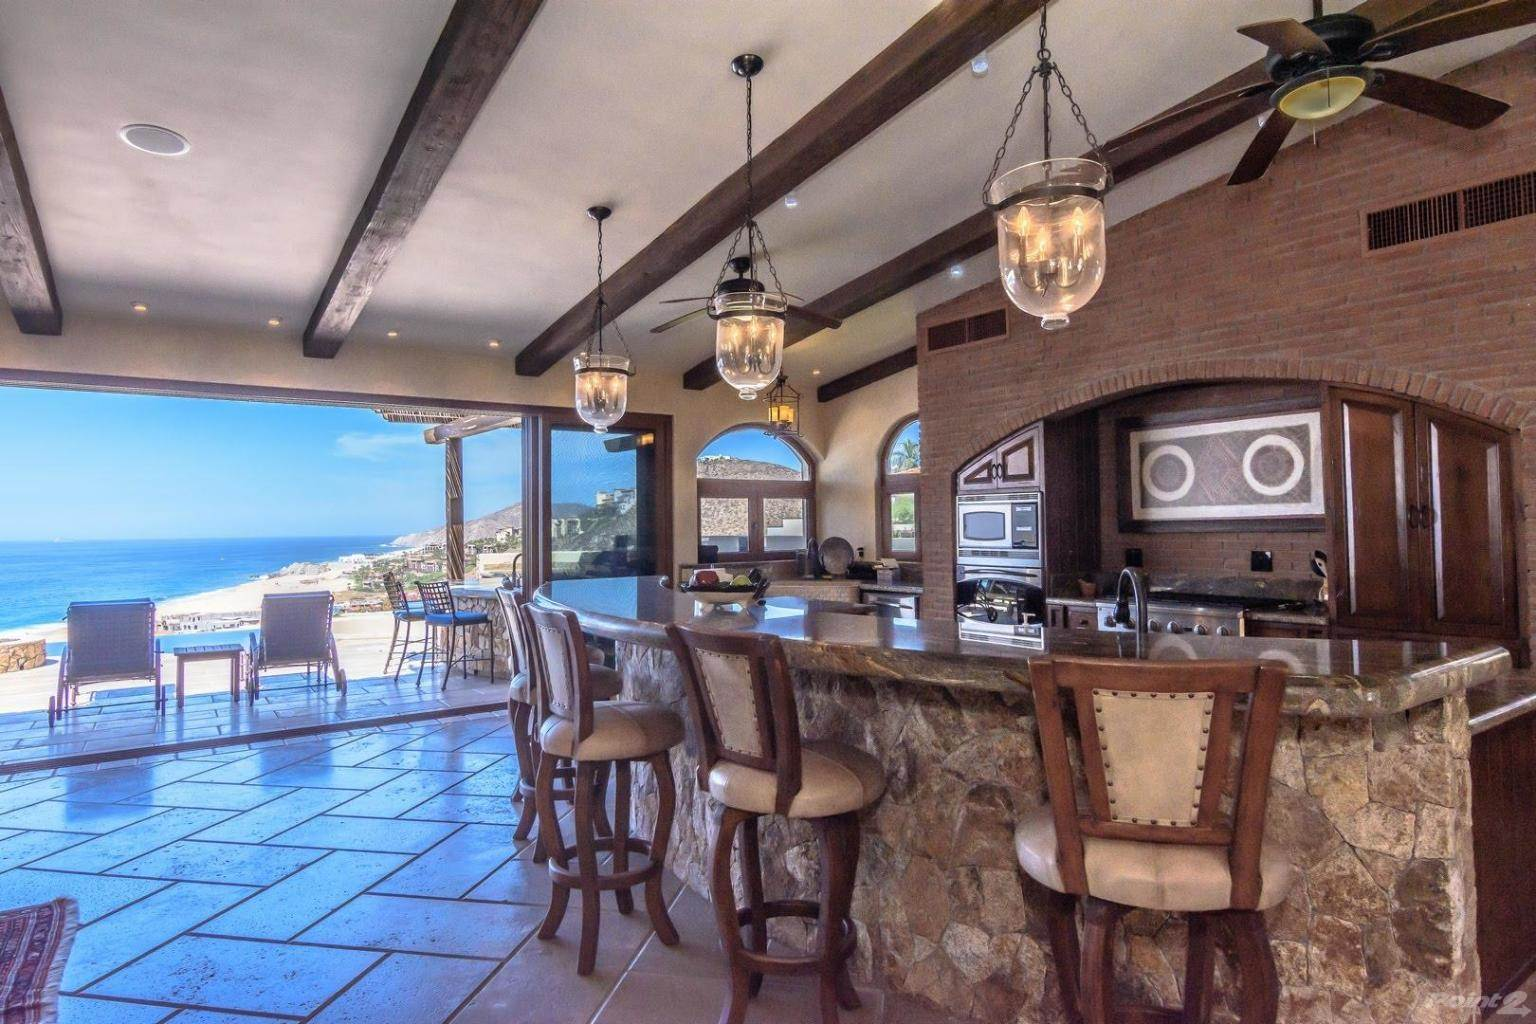 Residential For Sale in FOR SALE AMAZING HOUSE AT PEDREGAL $2,873,000 USD, Cabo San Lucas, Baja California Sur ,23400  , Mexico